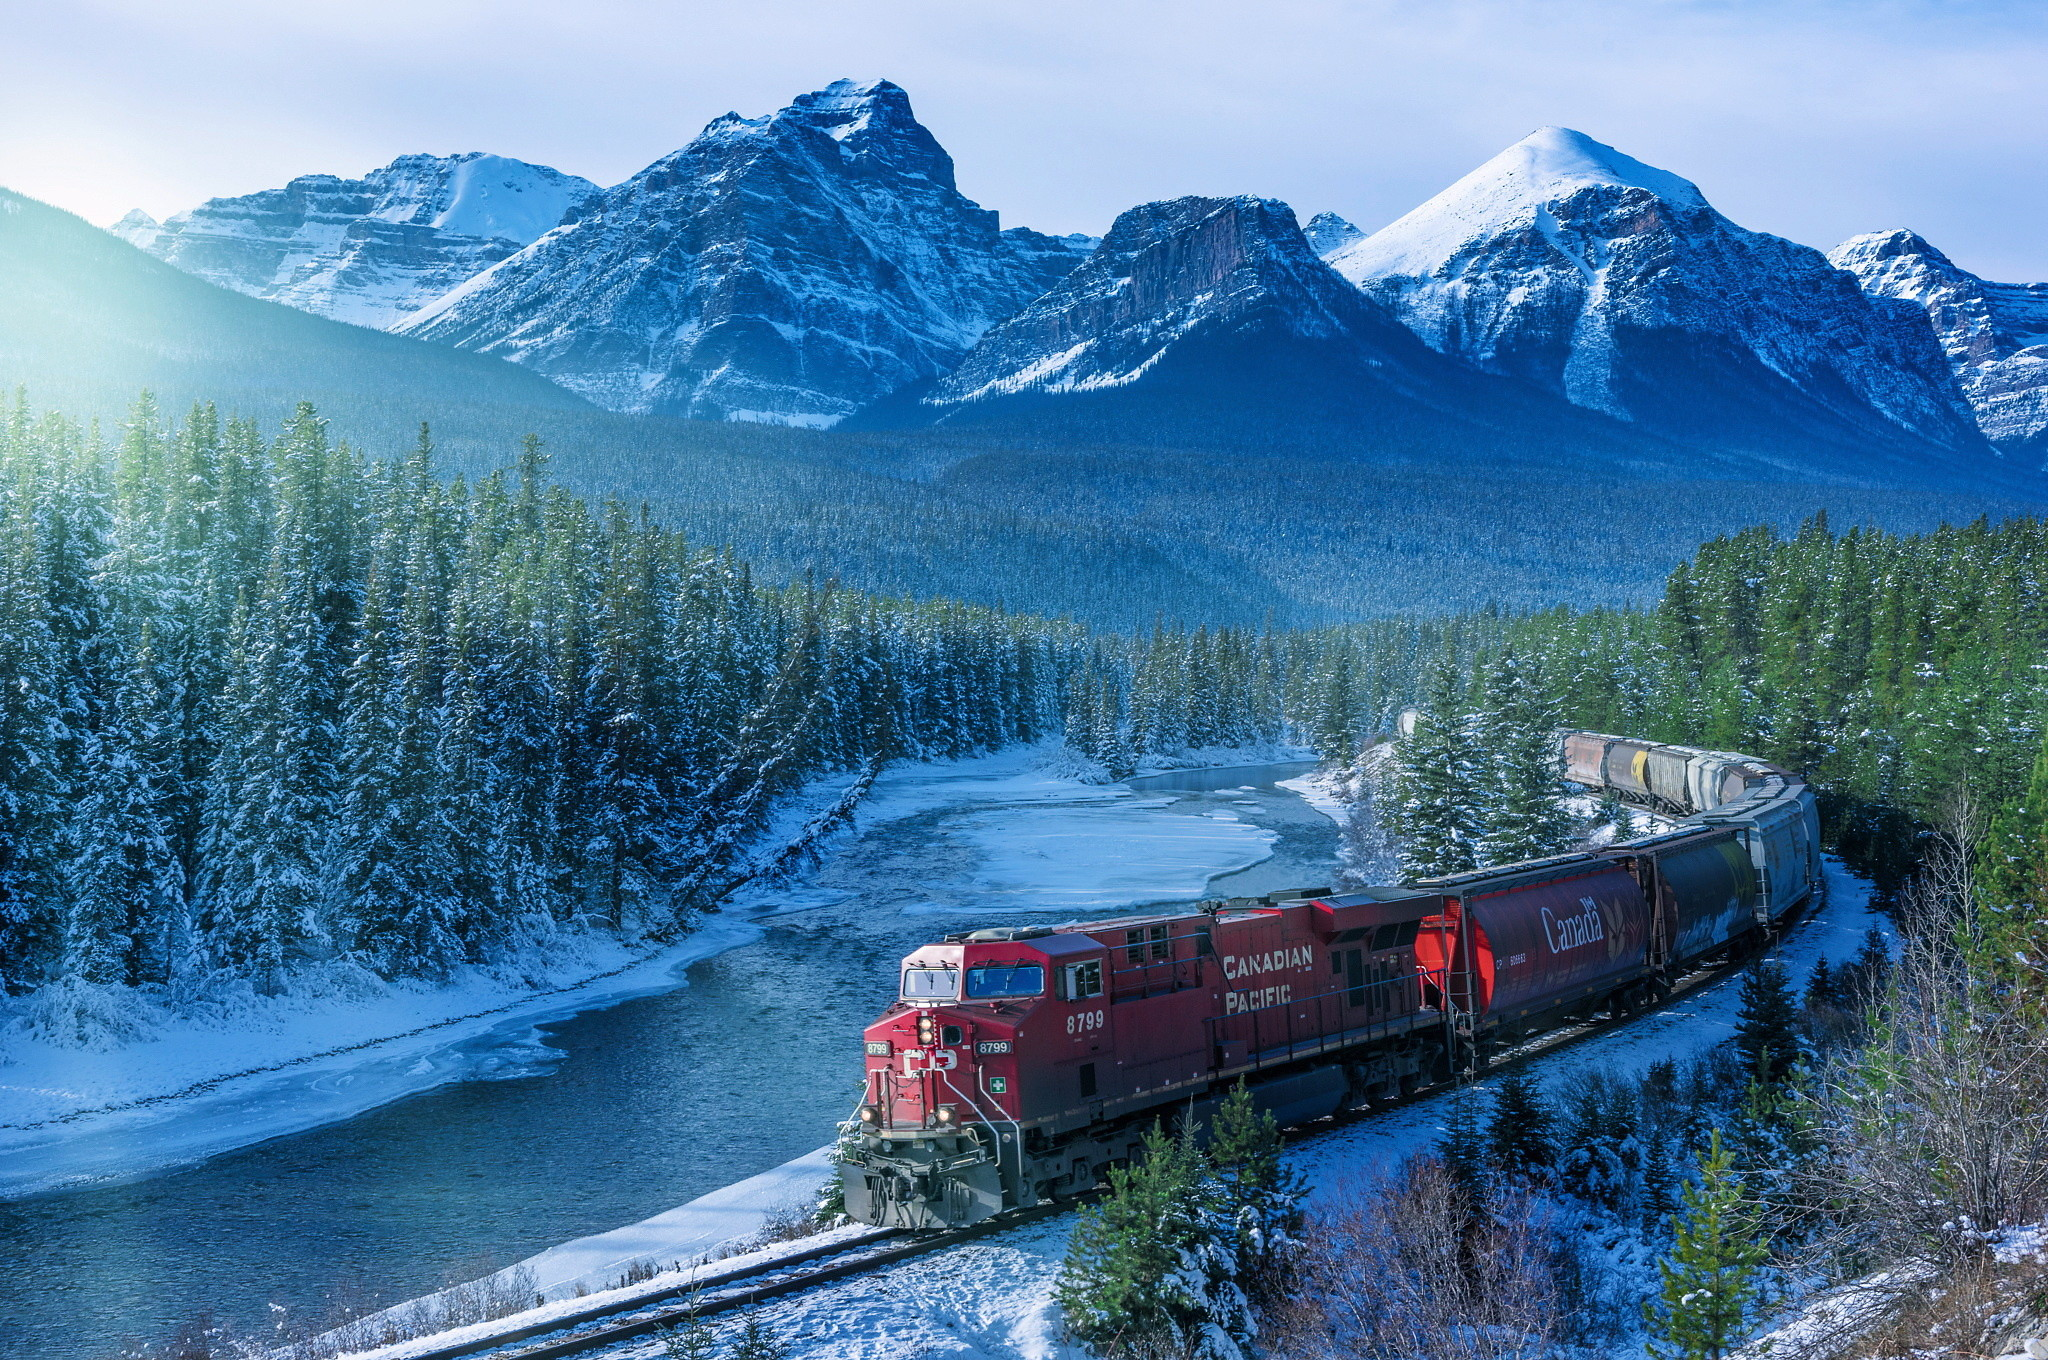 2048x1360 railway, train, Canada, Alberta, mountains, winter, forest, river